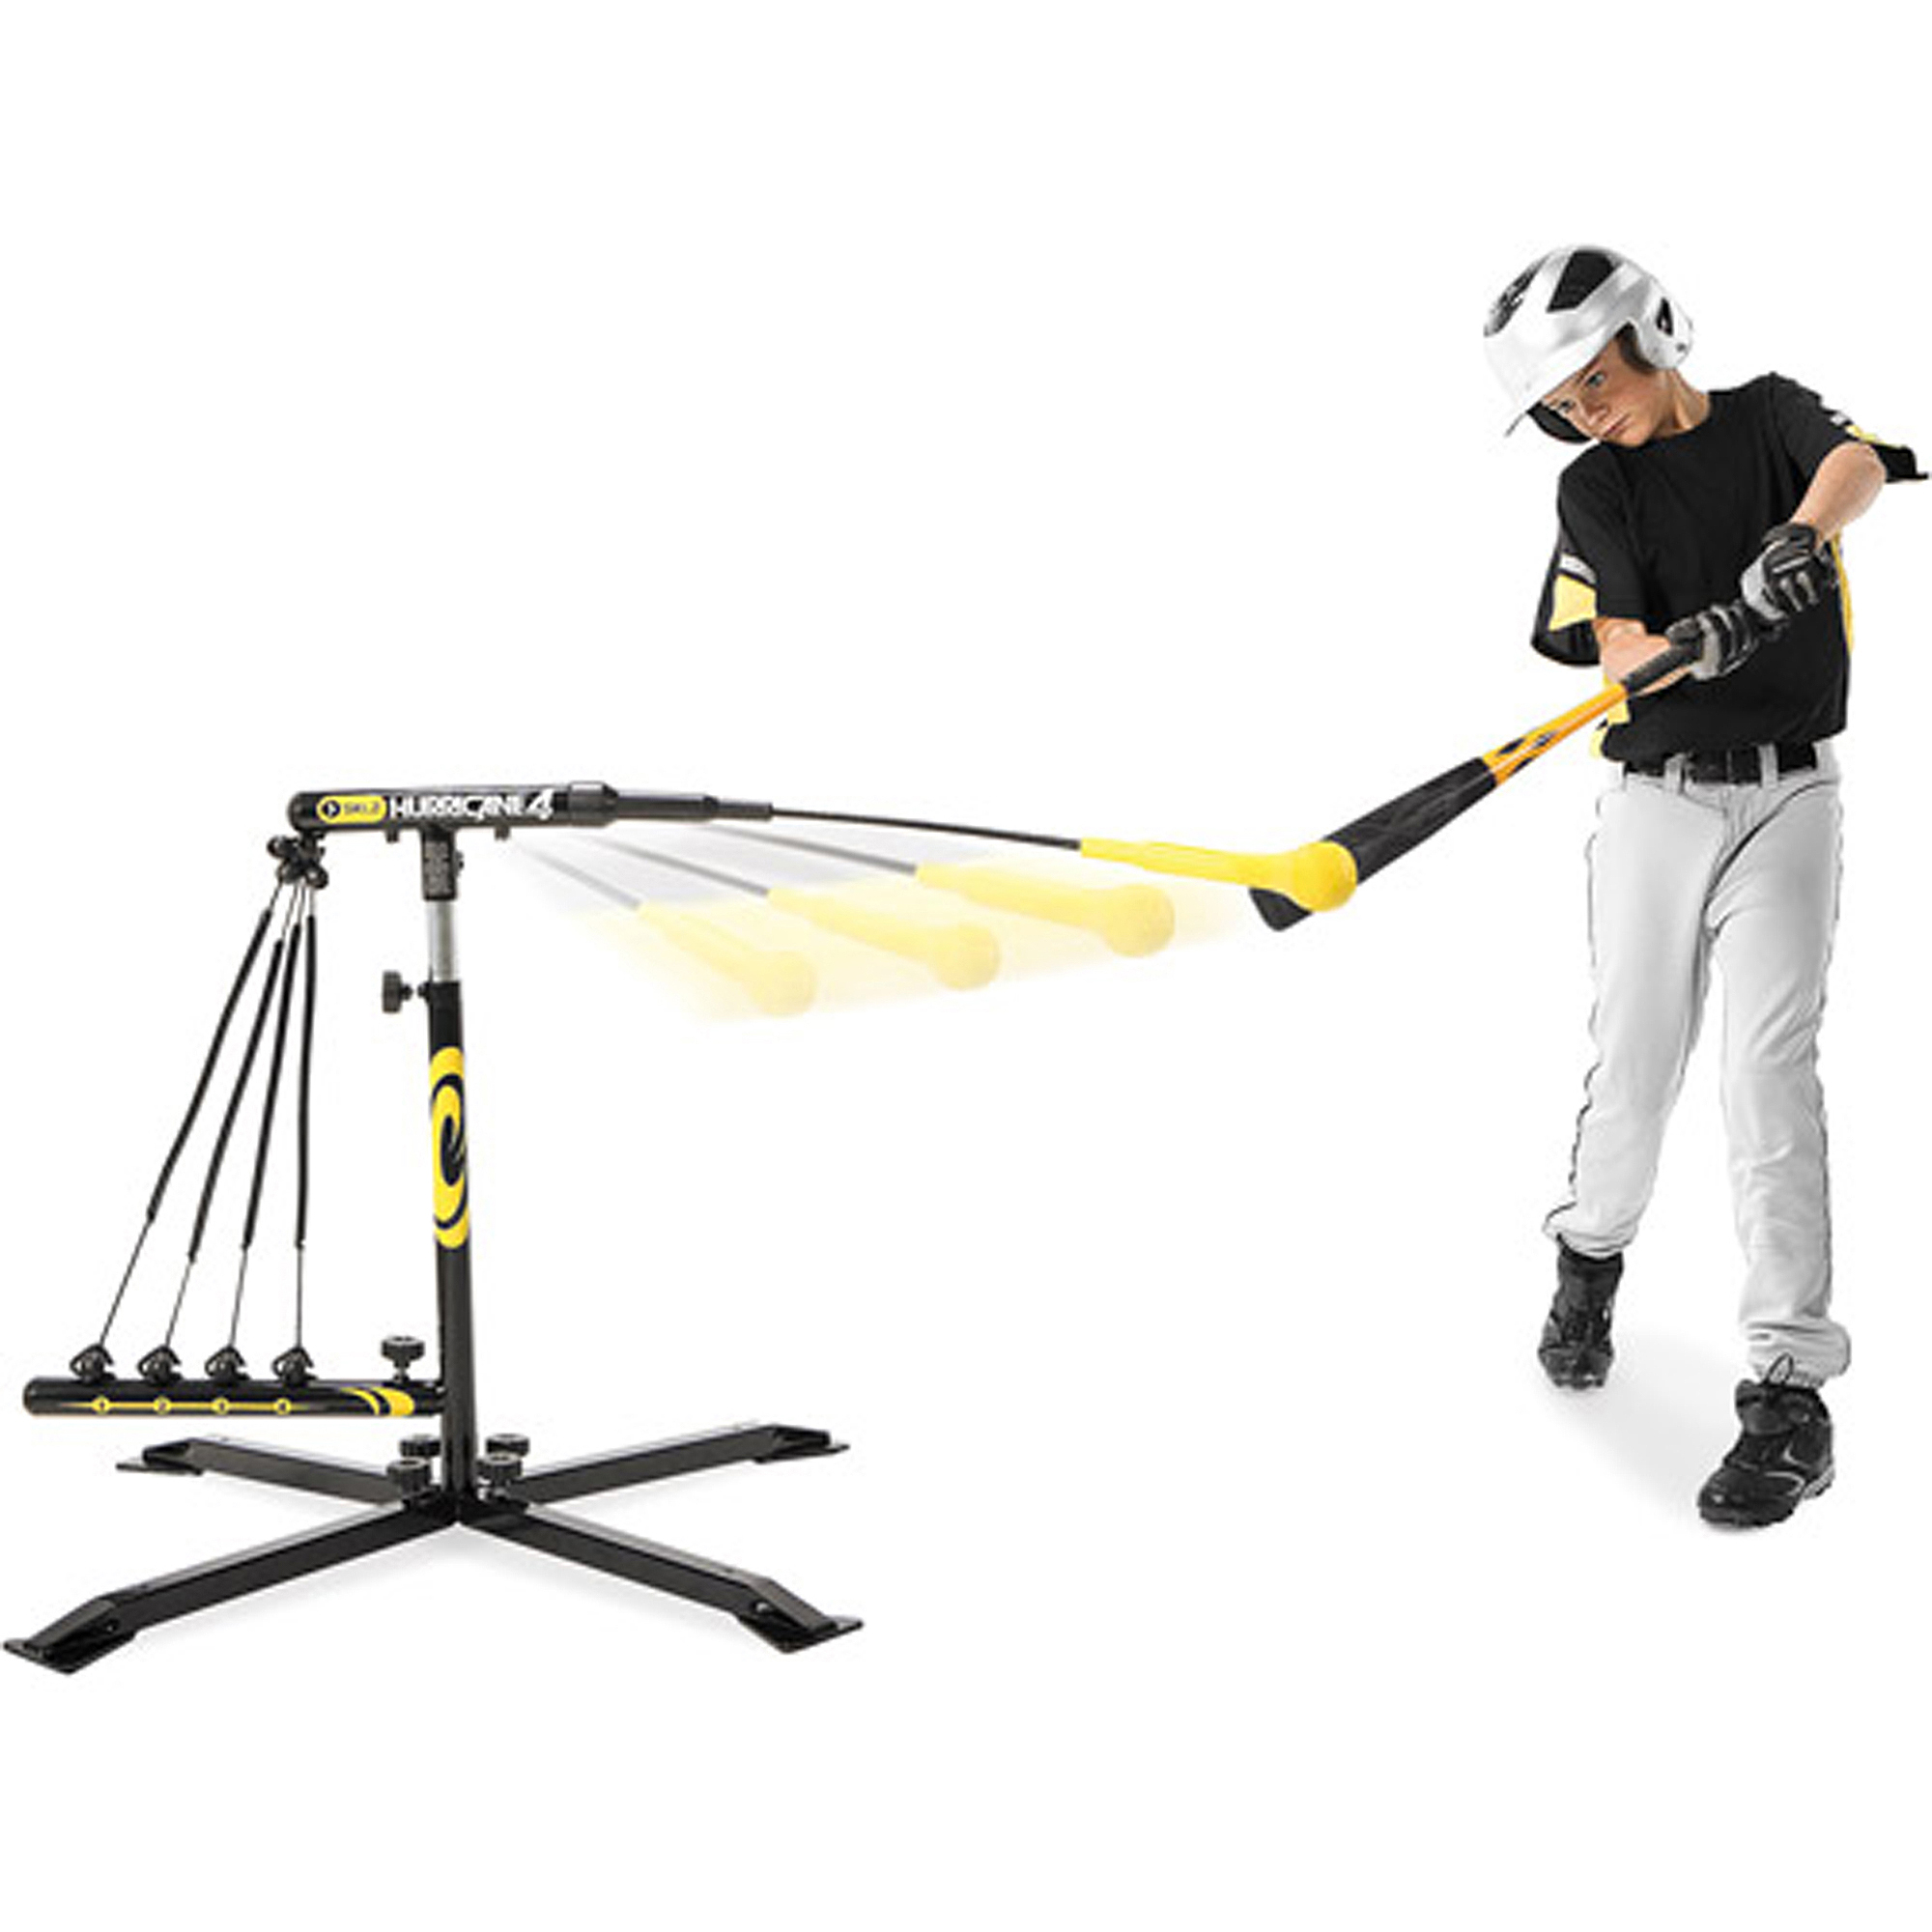 SKLZ Hurricane Category 4 - Solo Baseball Swing Trainer